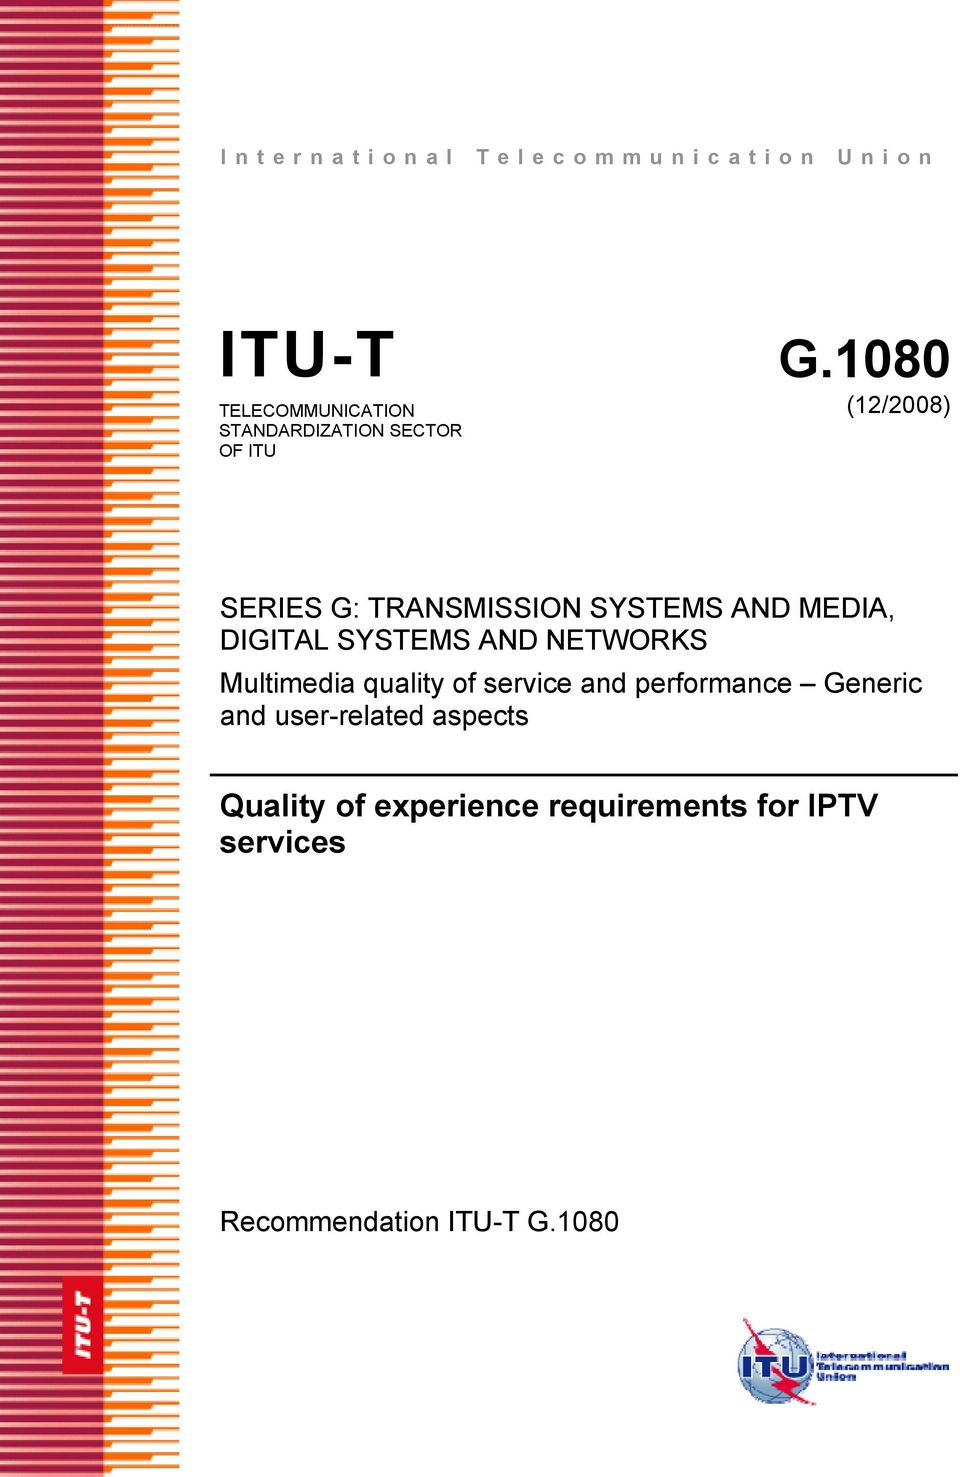 TRANSMISSION SYSTEMS AND MEDIA, DIGITAL SYSTEMS AND NETWORKS Multimedia quality of